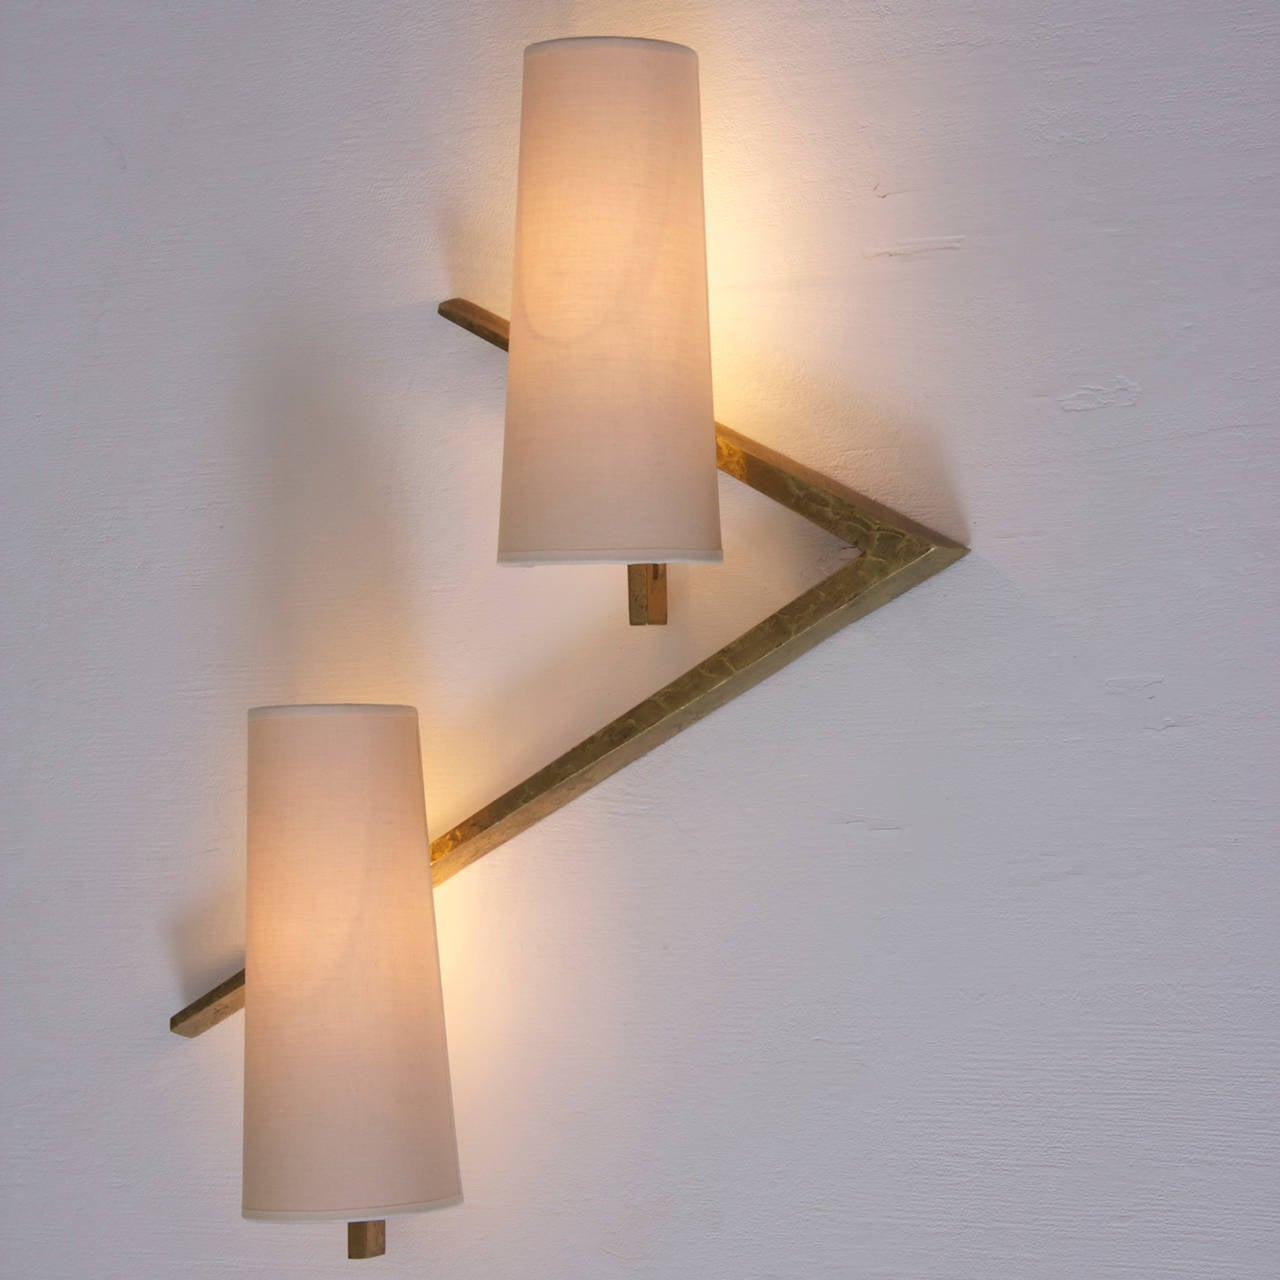 Stunning pair of bronze wall lamps. The wall lamps are in excellent condition. Each lamp is fitted with two E14 bulb.